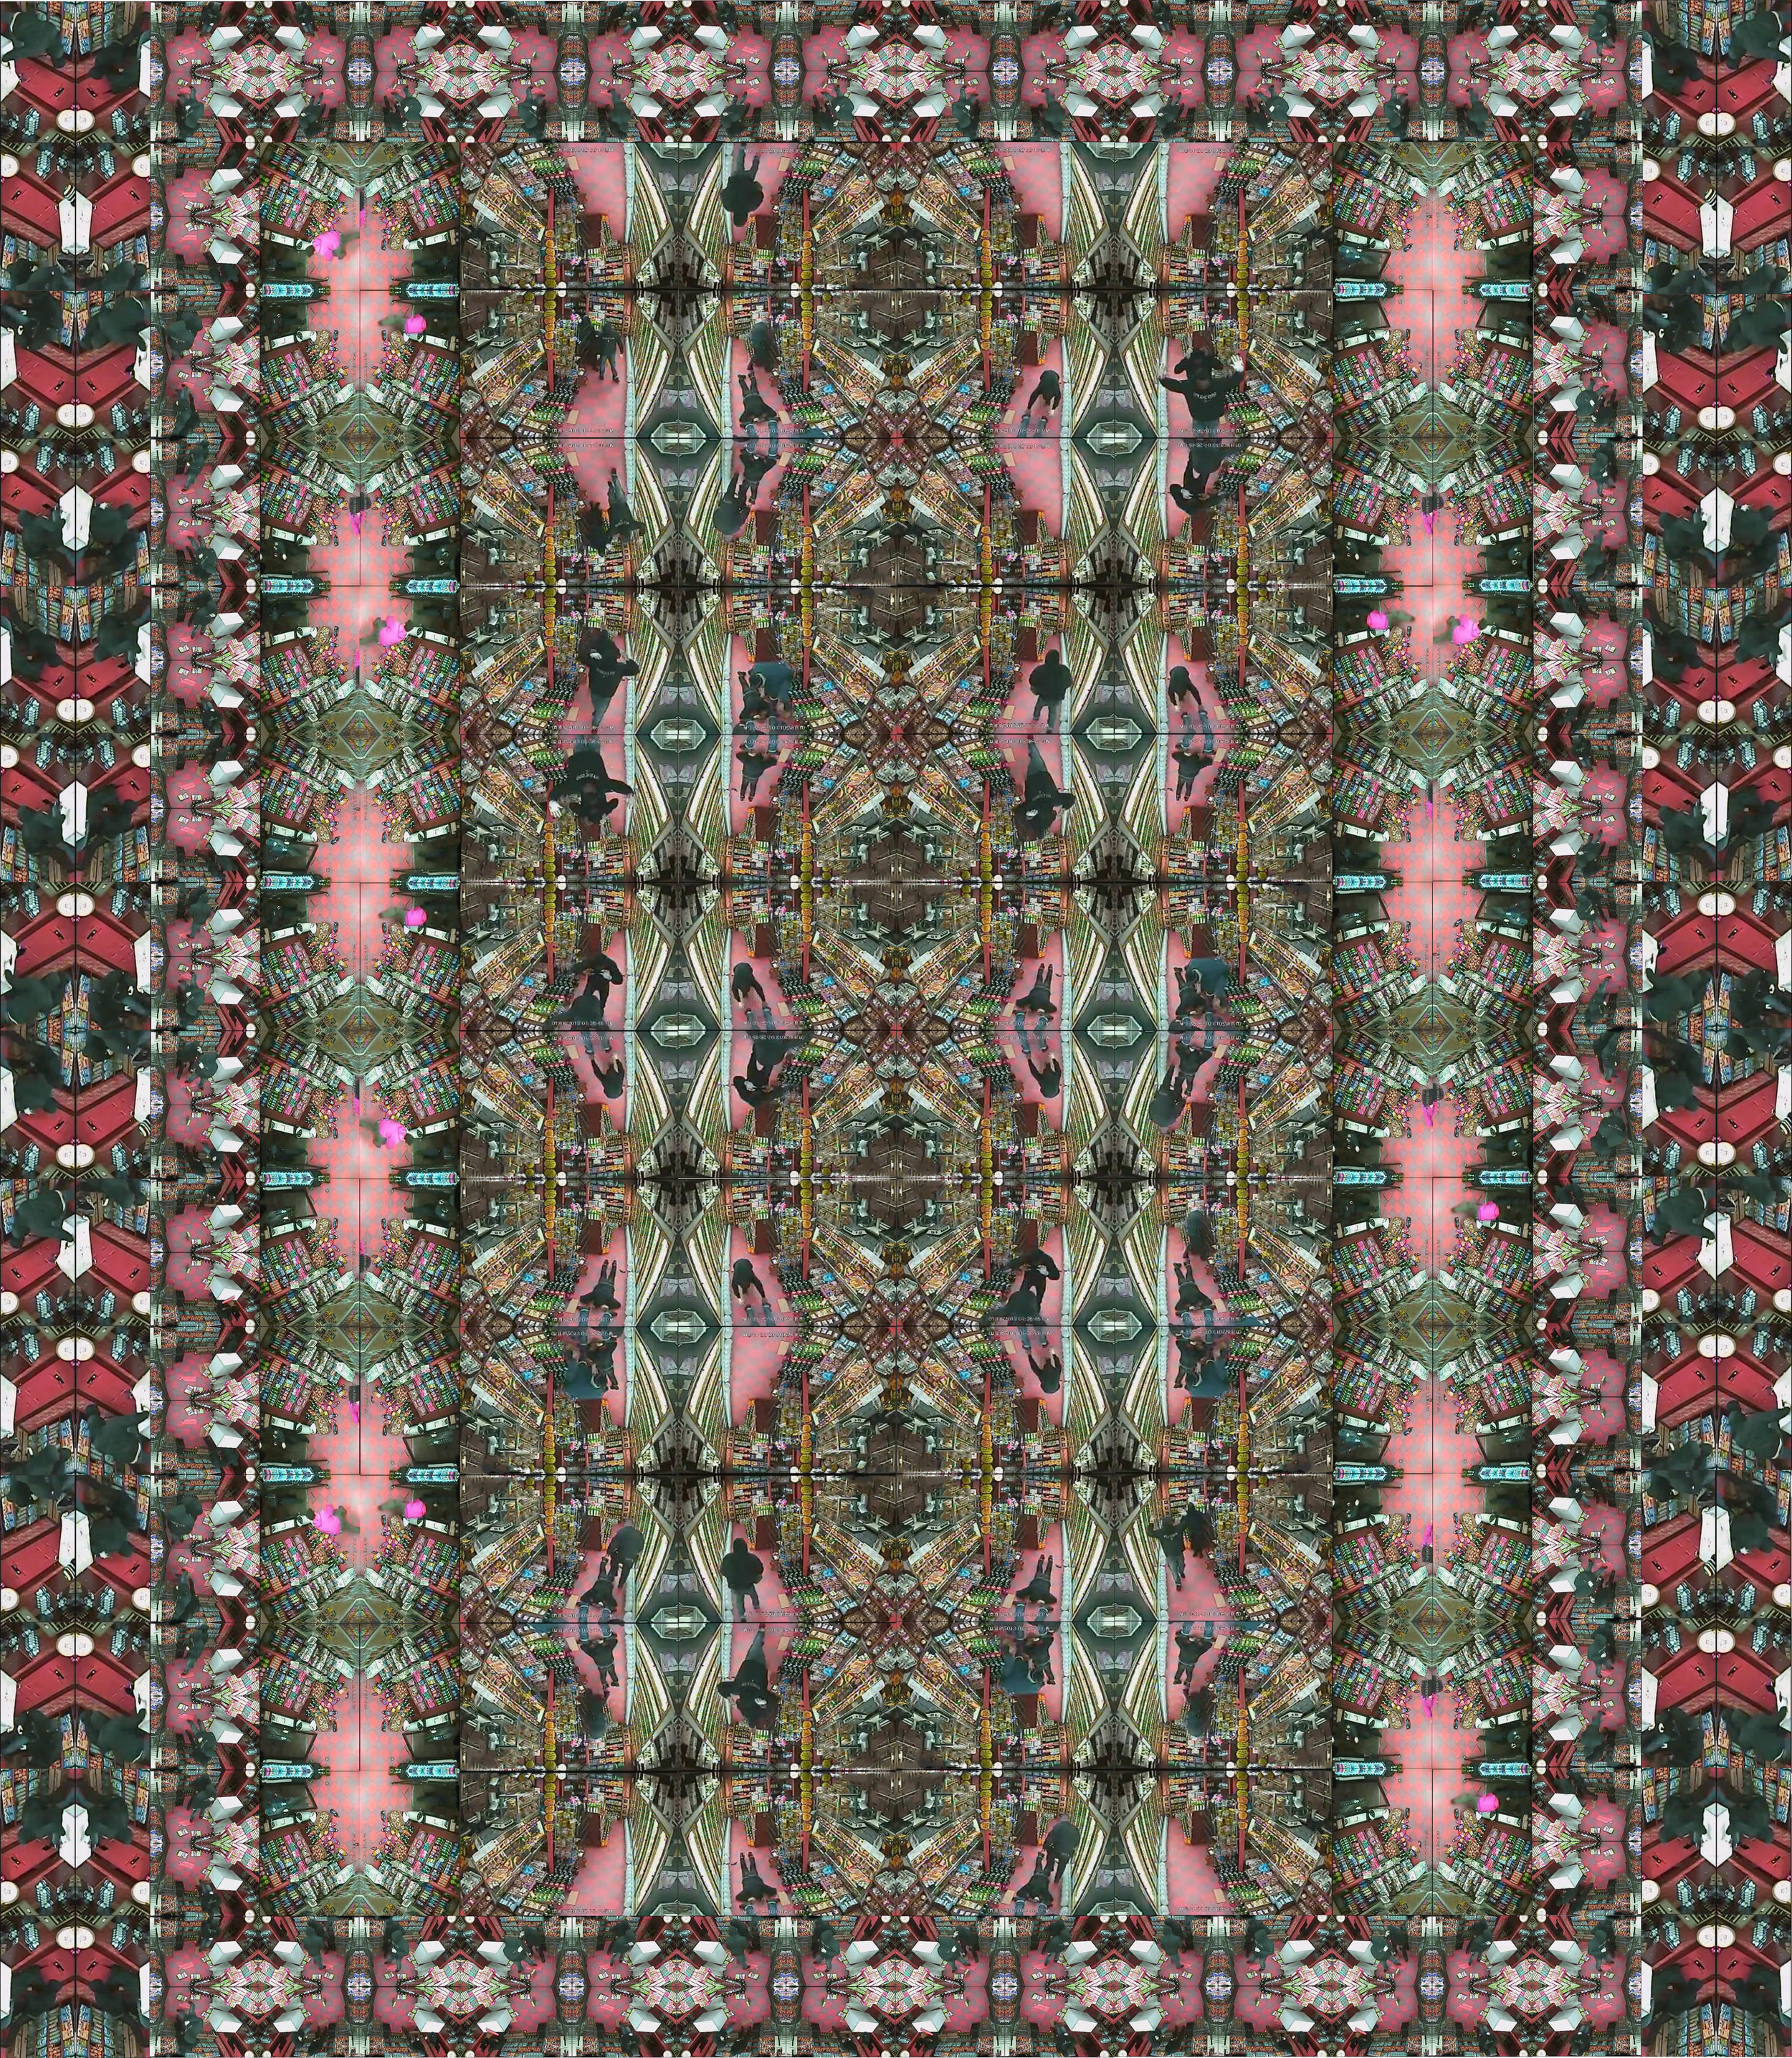 Magic Eye Dazzle